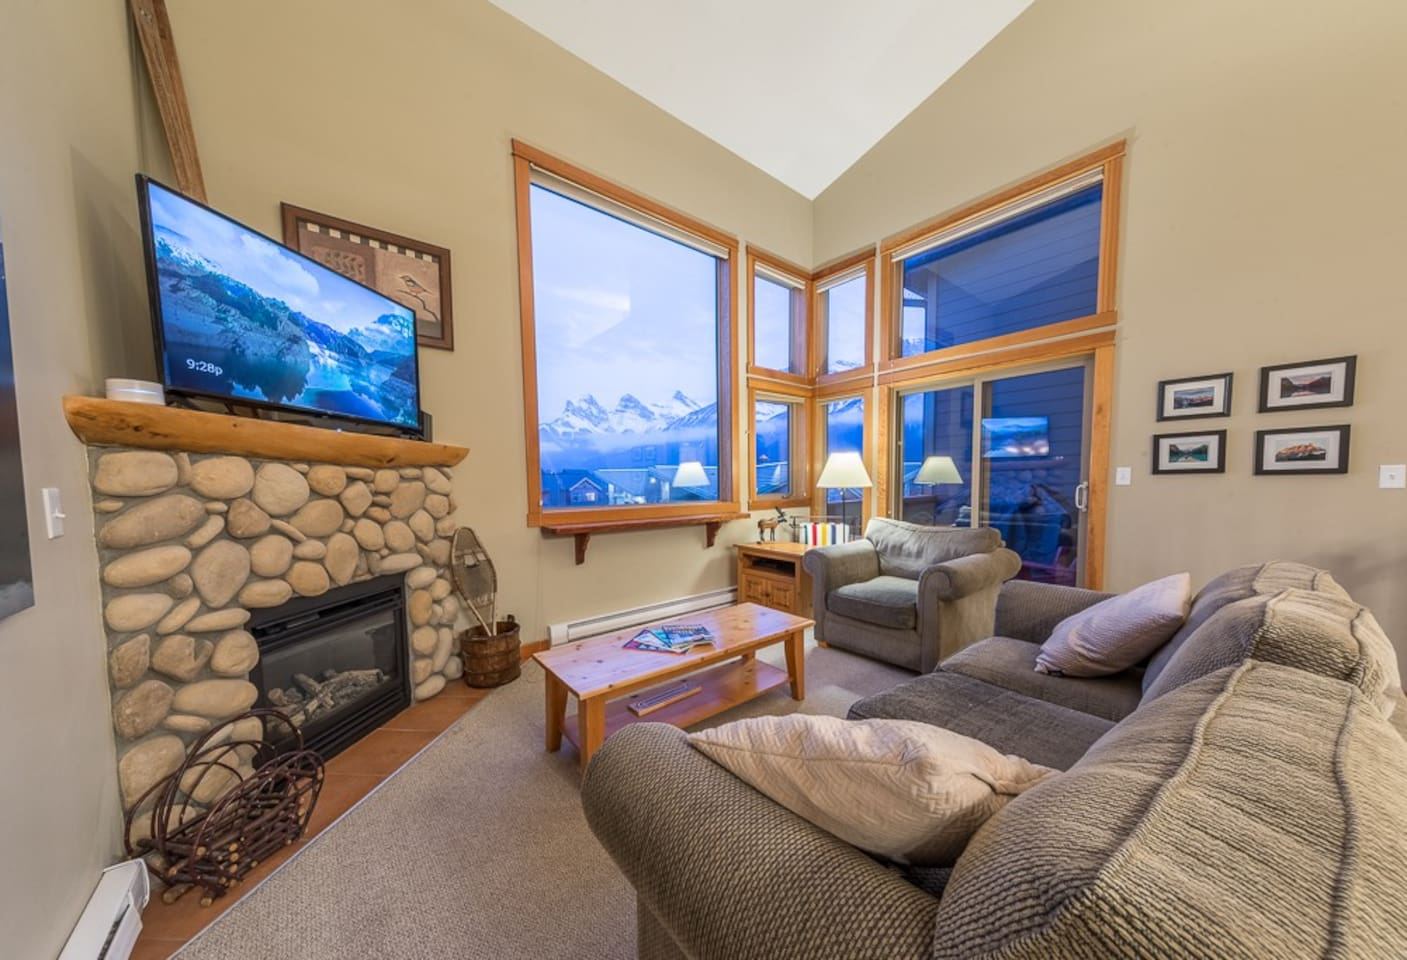 Our condo is a top floor unit in Canmore Crossing. We have large windows that give panoramic views of the mountains to the south including the Three Sisters.  Add us to your wish list! We'd love to host you.